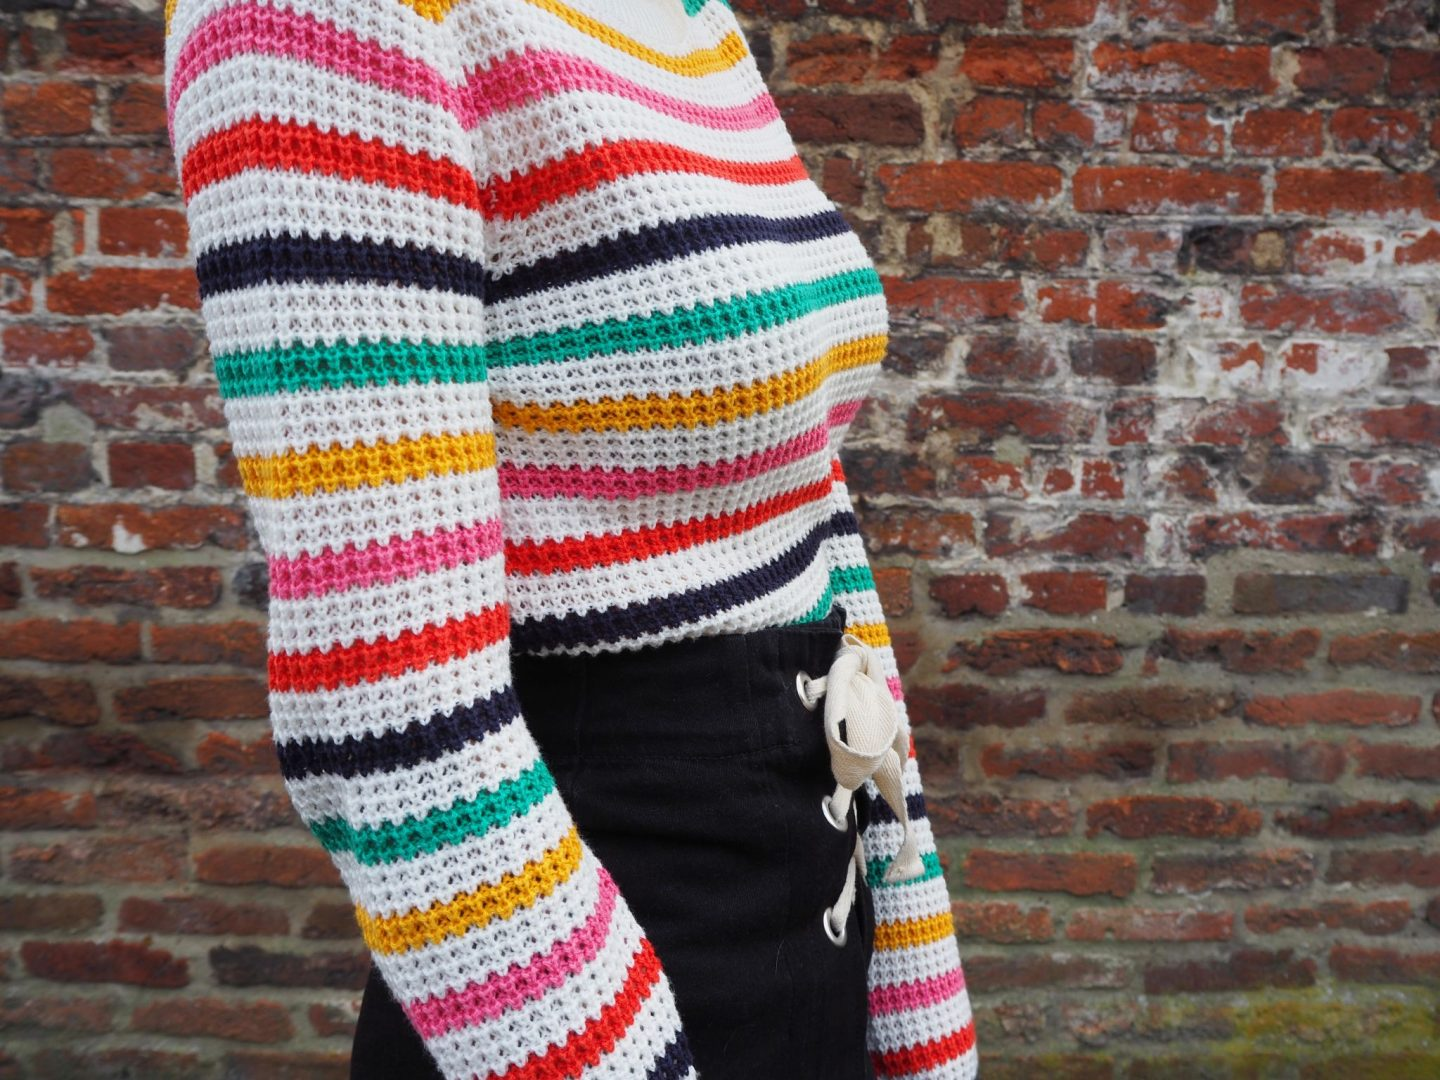 Defining my style - jumper closeup from side view